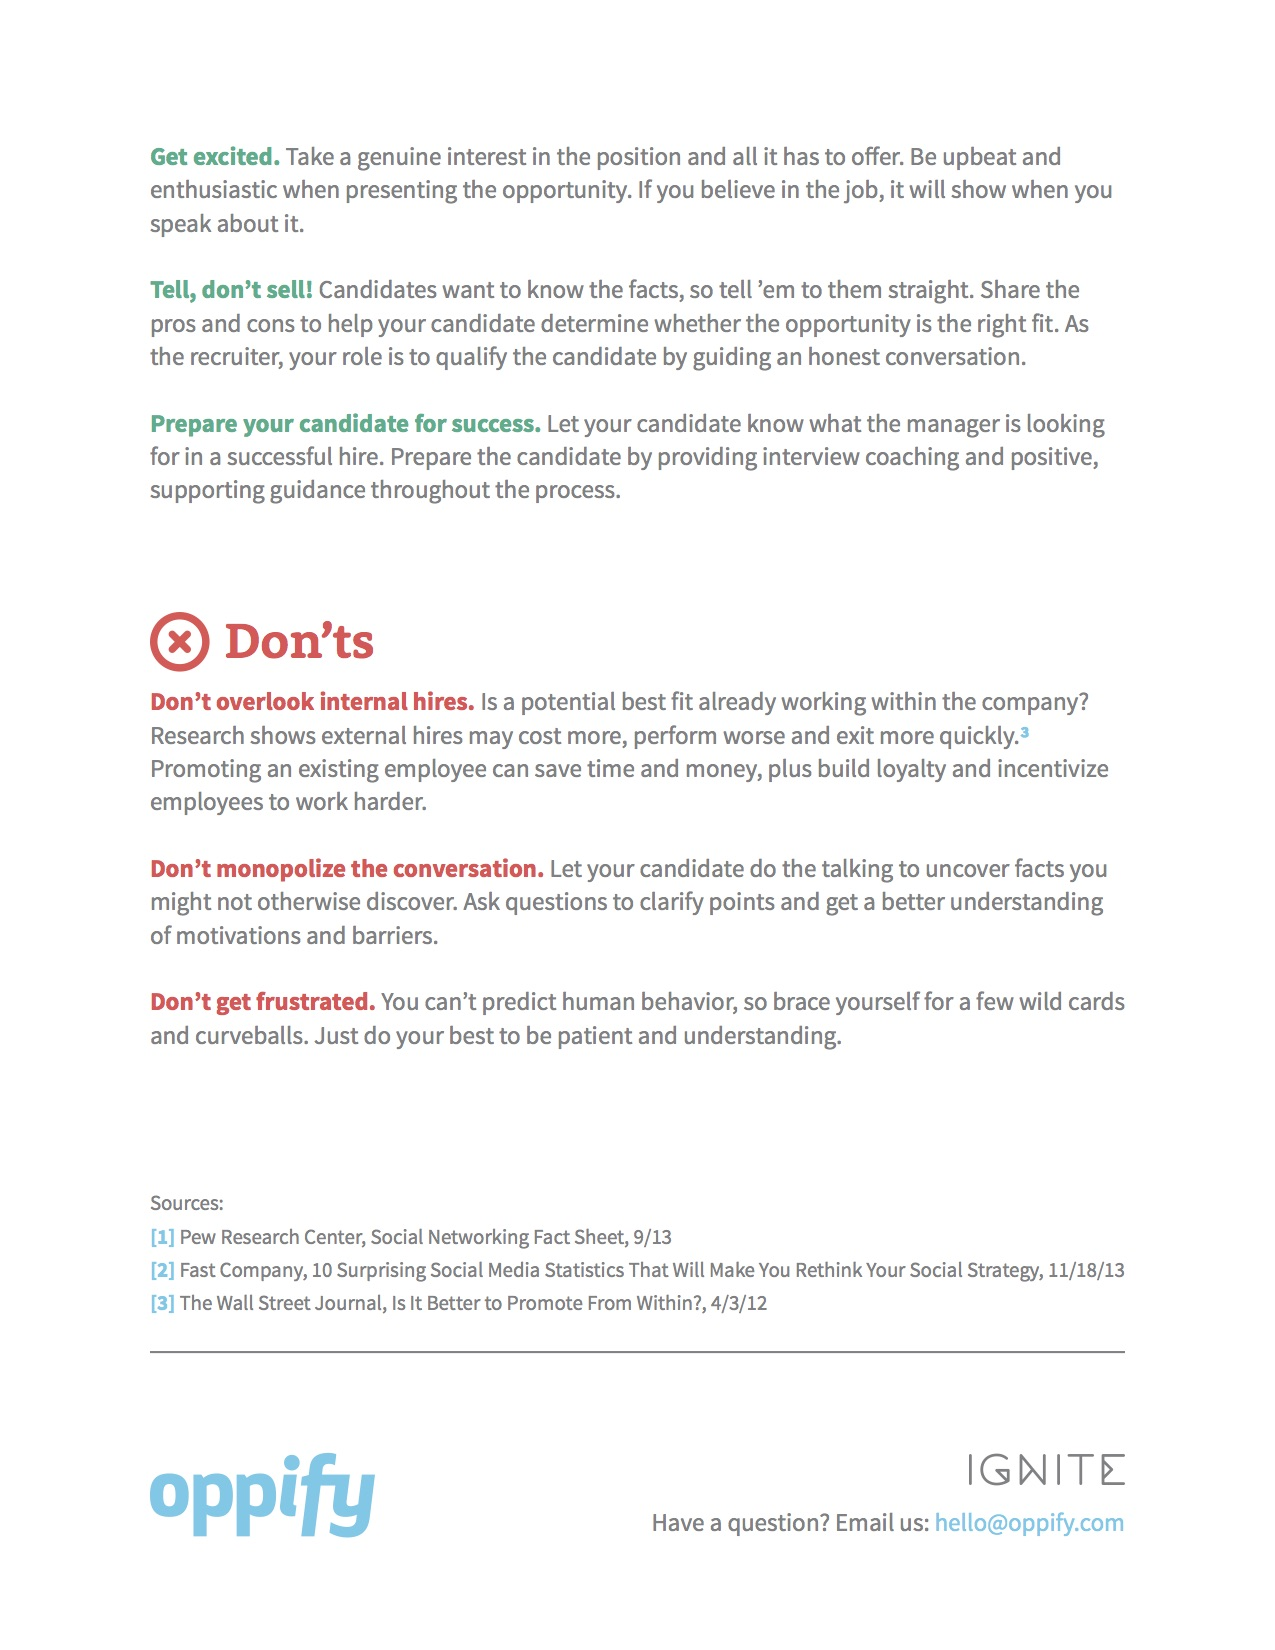 Oppify Recruiter Do's and Don'ts Back Page